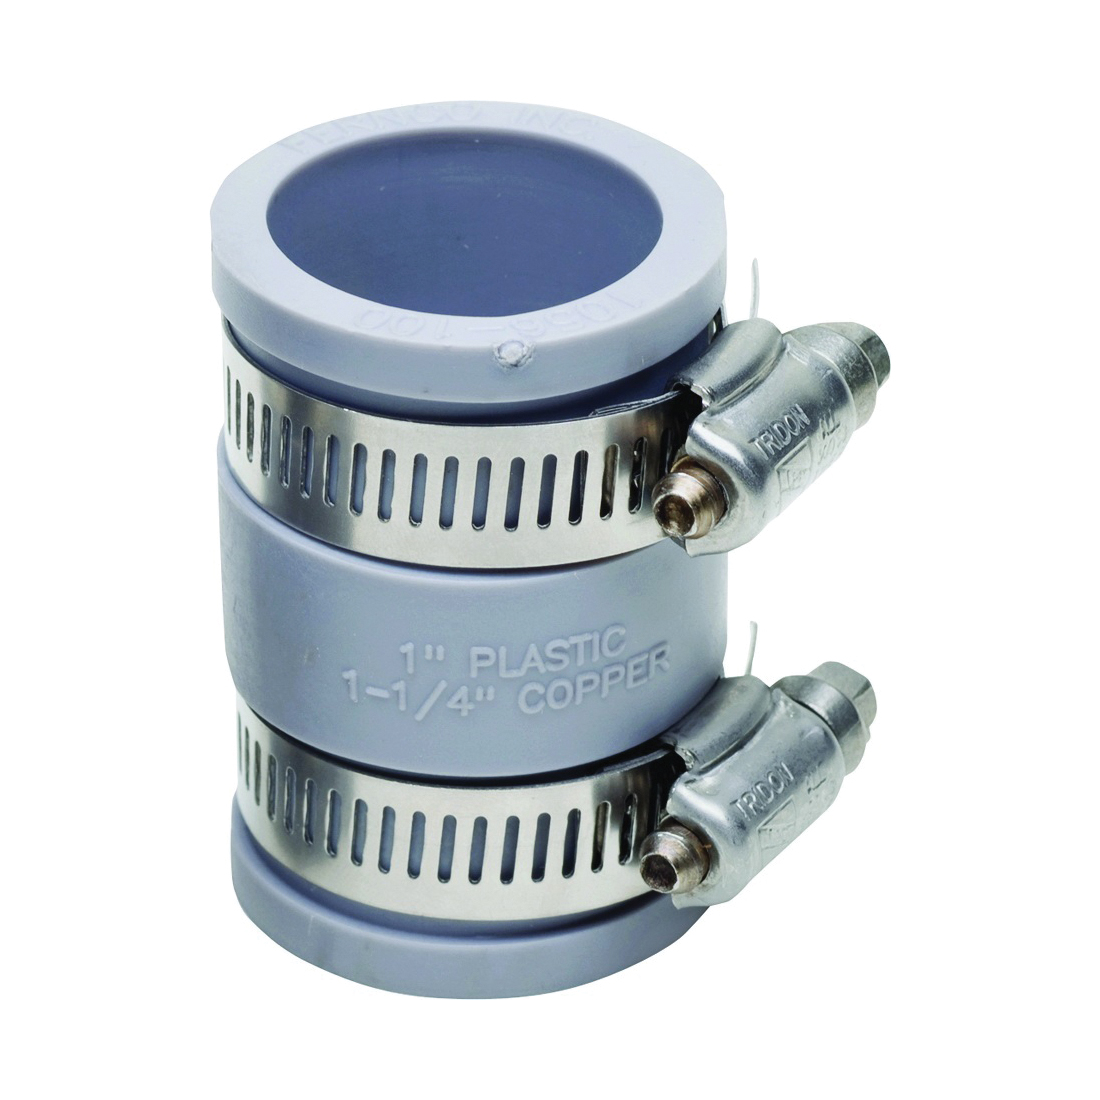 Picture of FERNCO P1056-100 Flexible Pipe Coupling, 1 in, PVC, SCH 40 Schedule, 4.3 psi Pressure